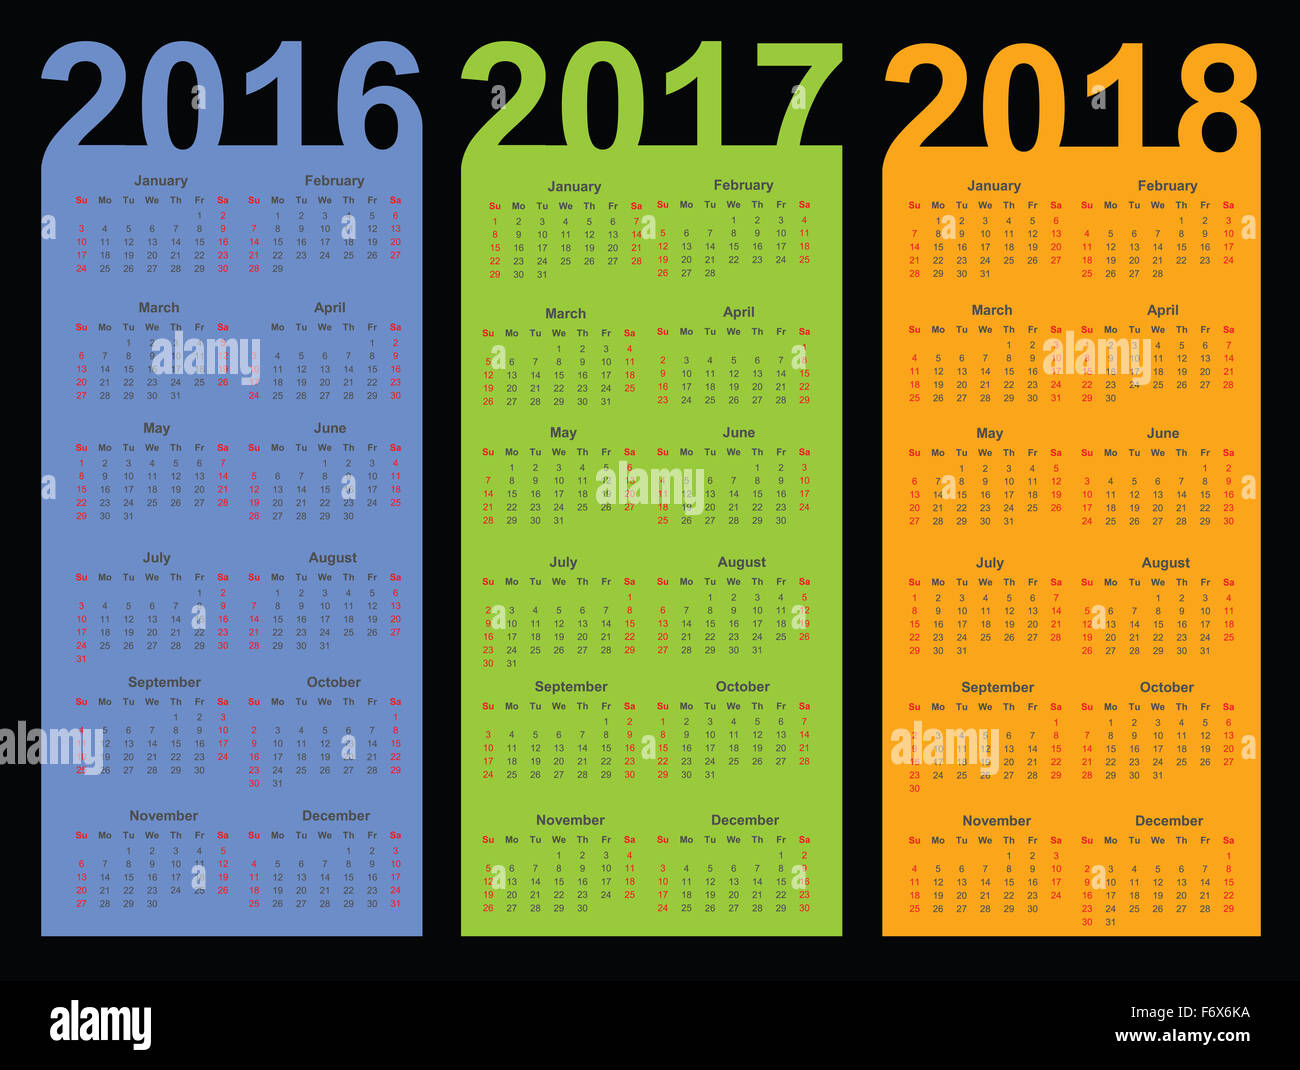 Calendar For 2016, 2017 And 2018 Year Stock Photo, Royalty Free Image ...